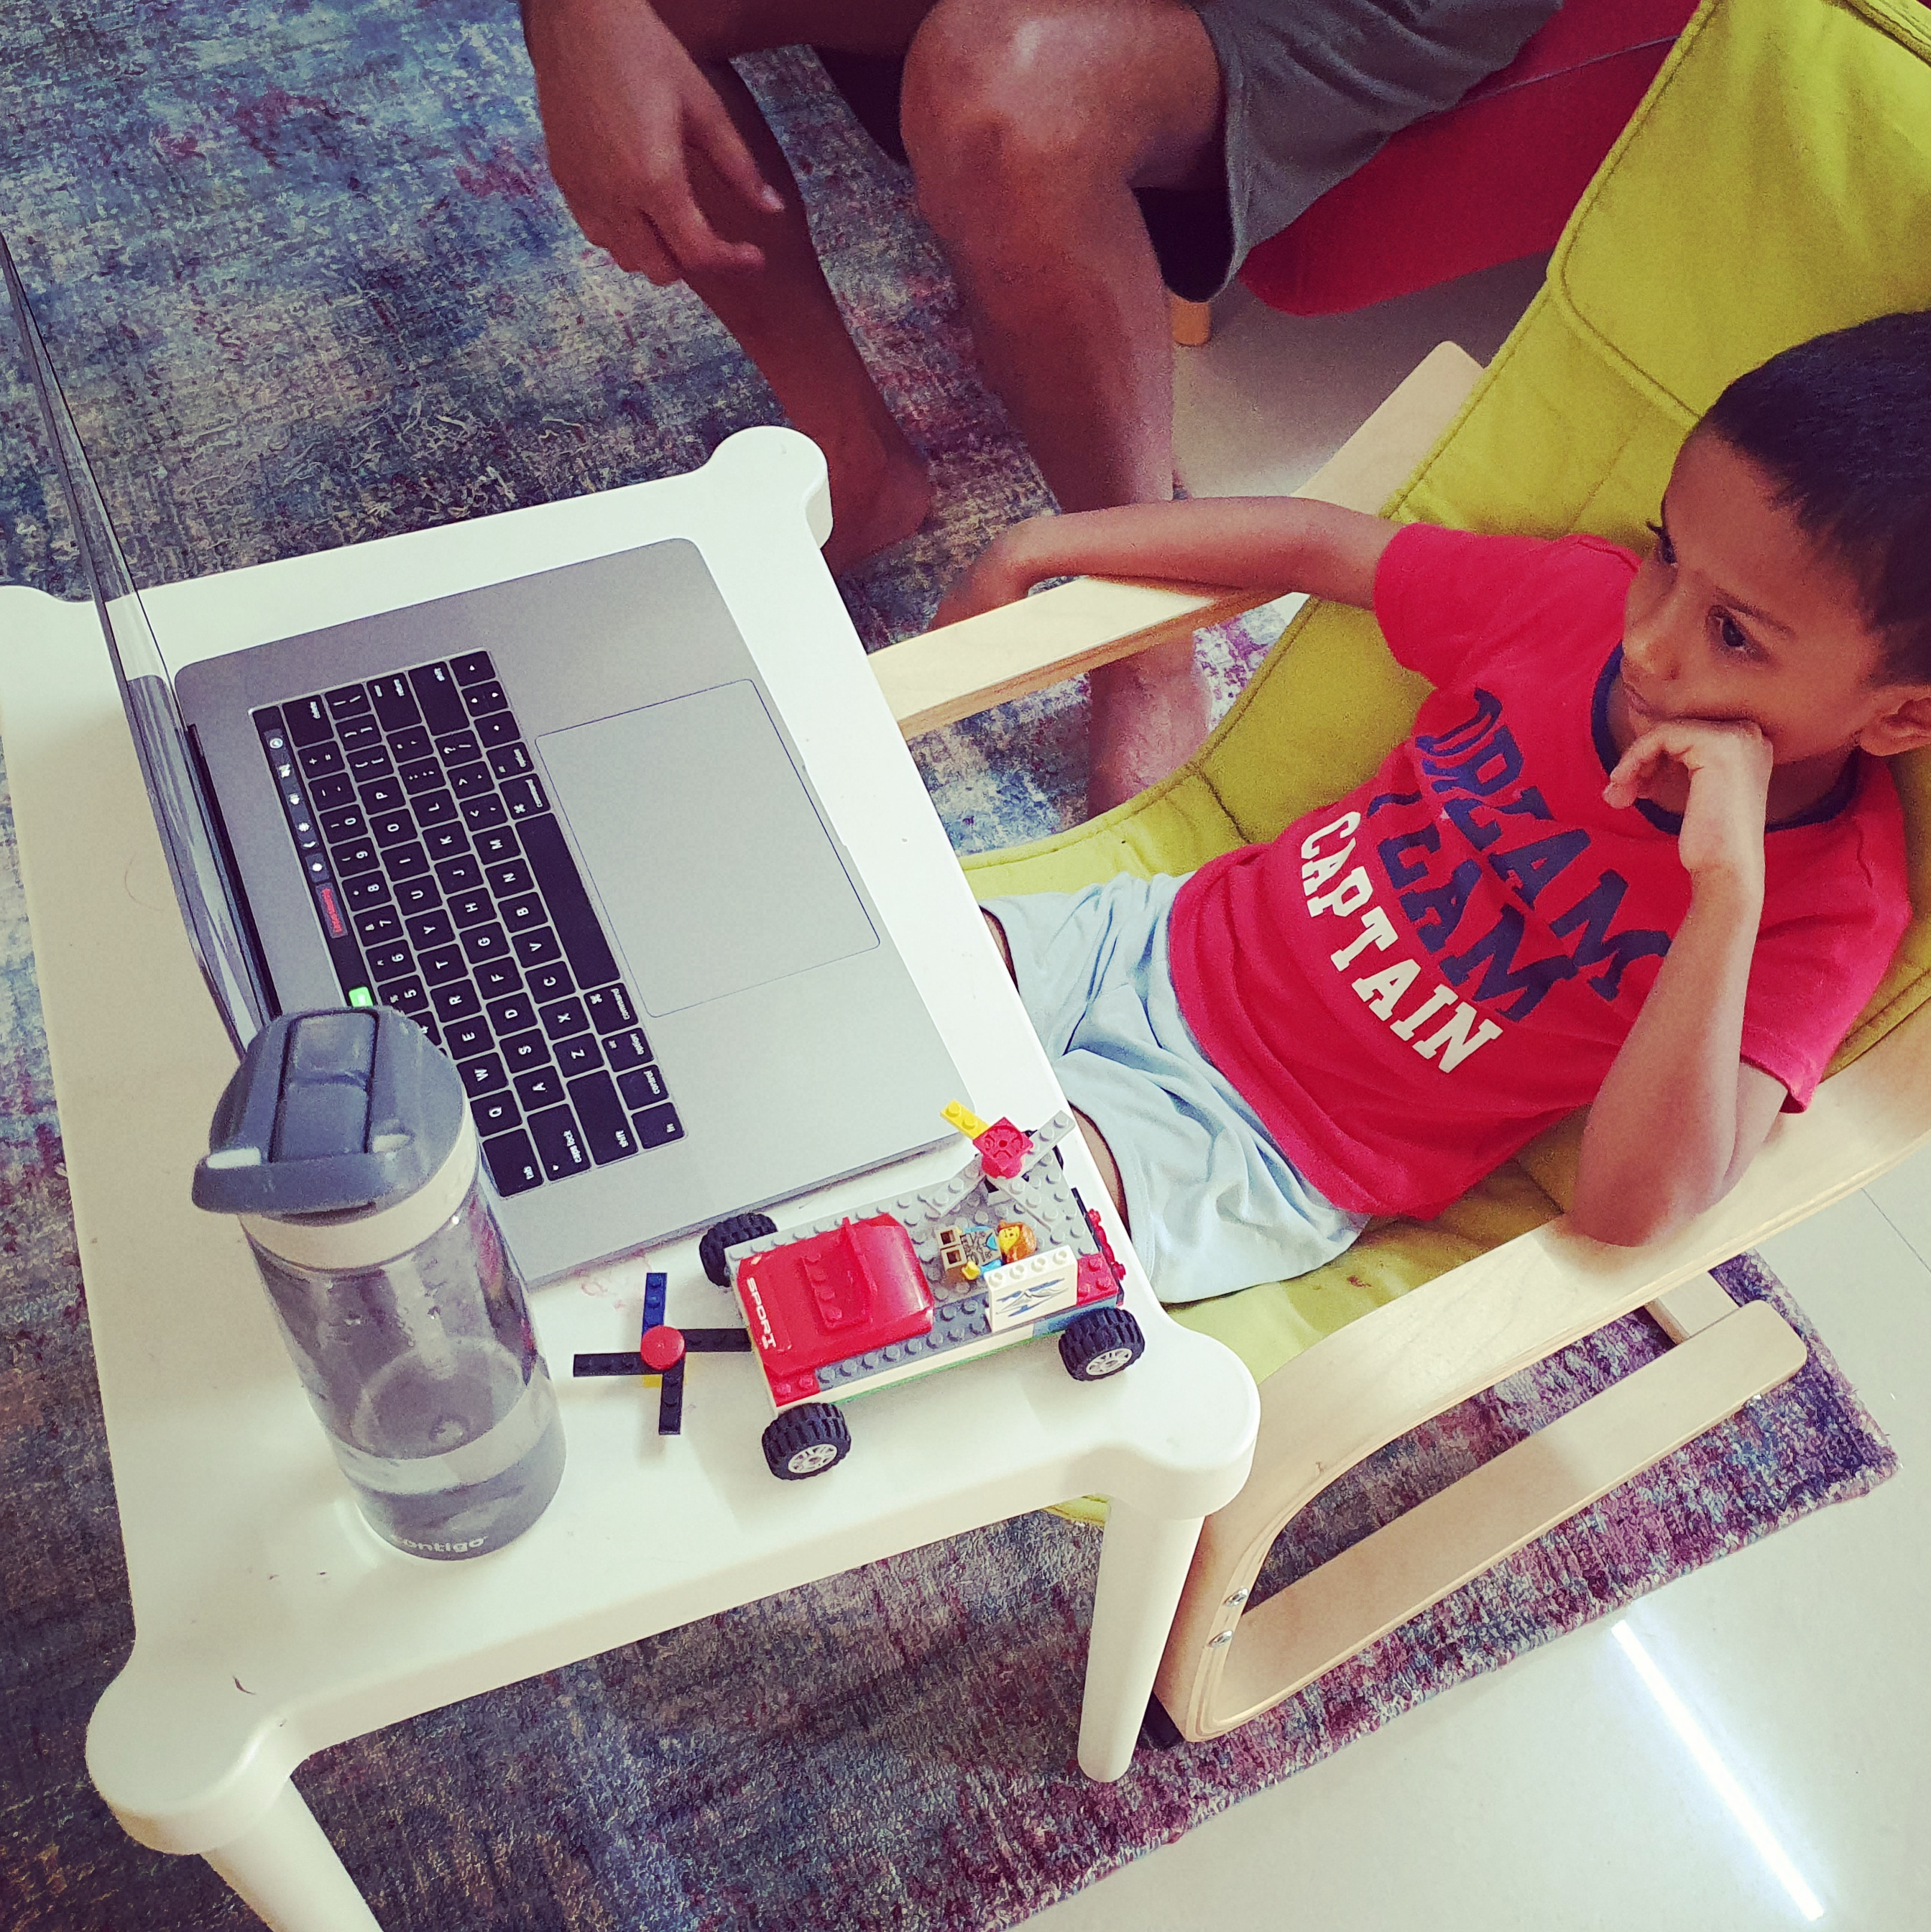 Child in front of a laptop attending online school